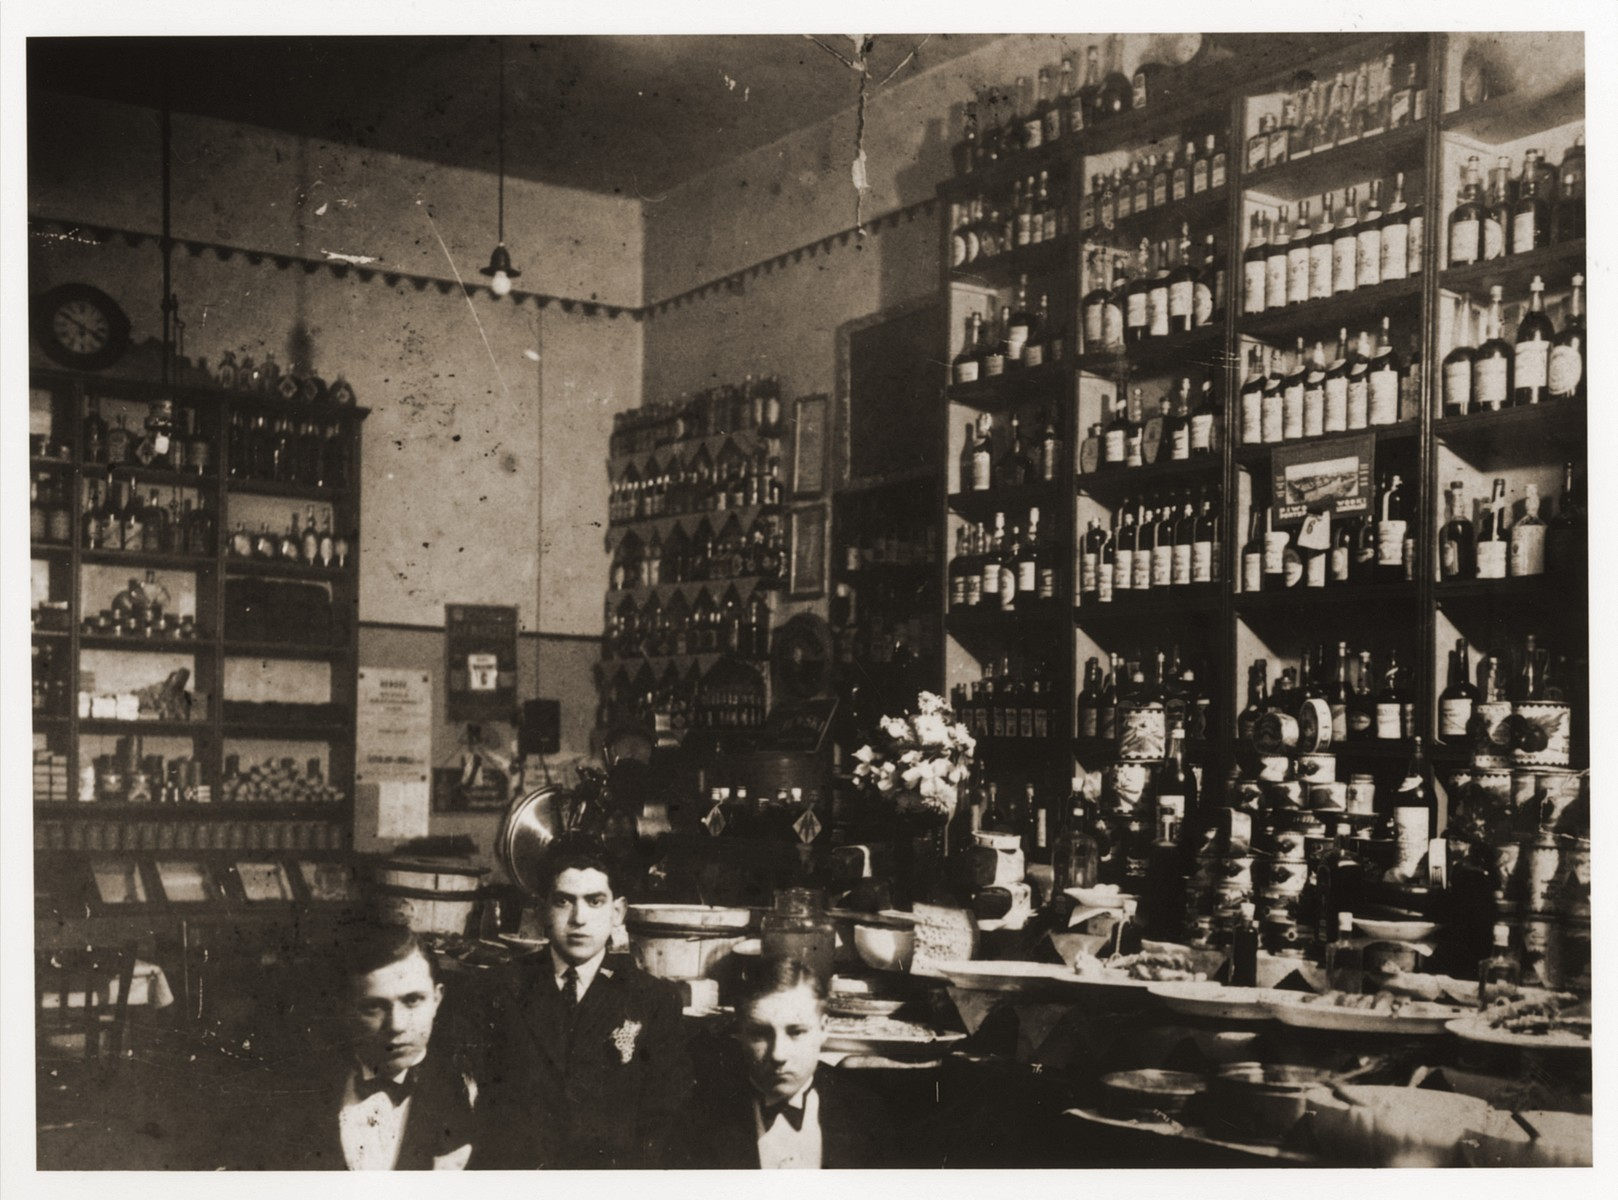 Izio Littman (center) and two friends pose in a liquor store in Drohobycz, Poland.